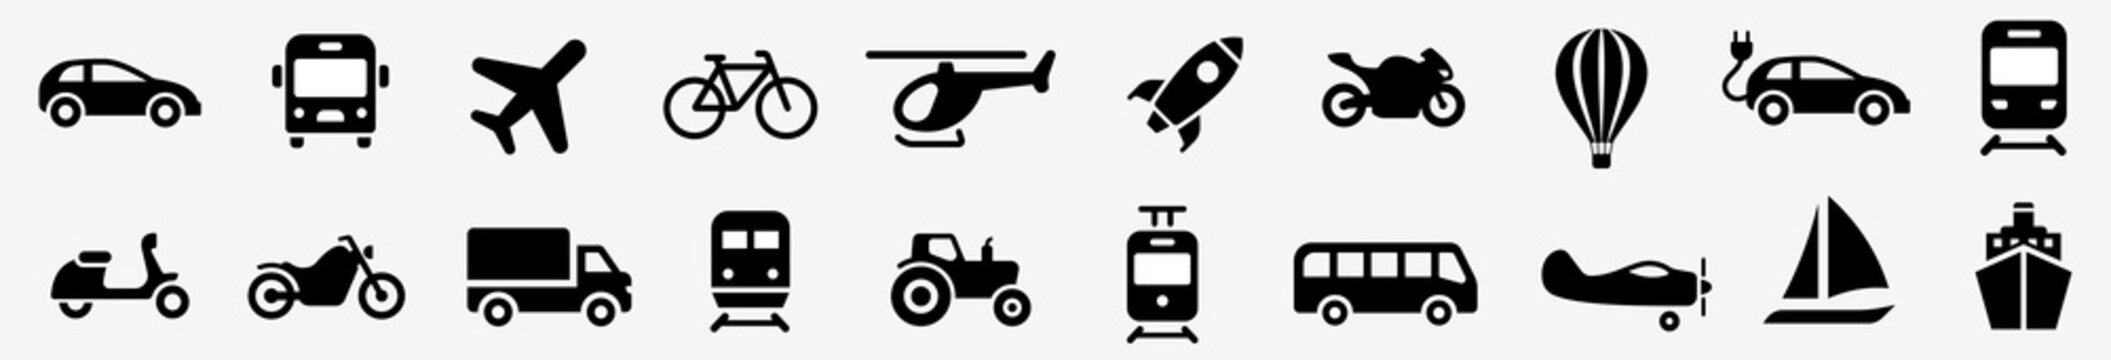 Transport simple icon. Transportation icons set vector